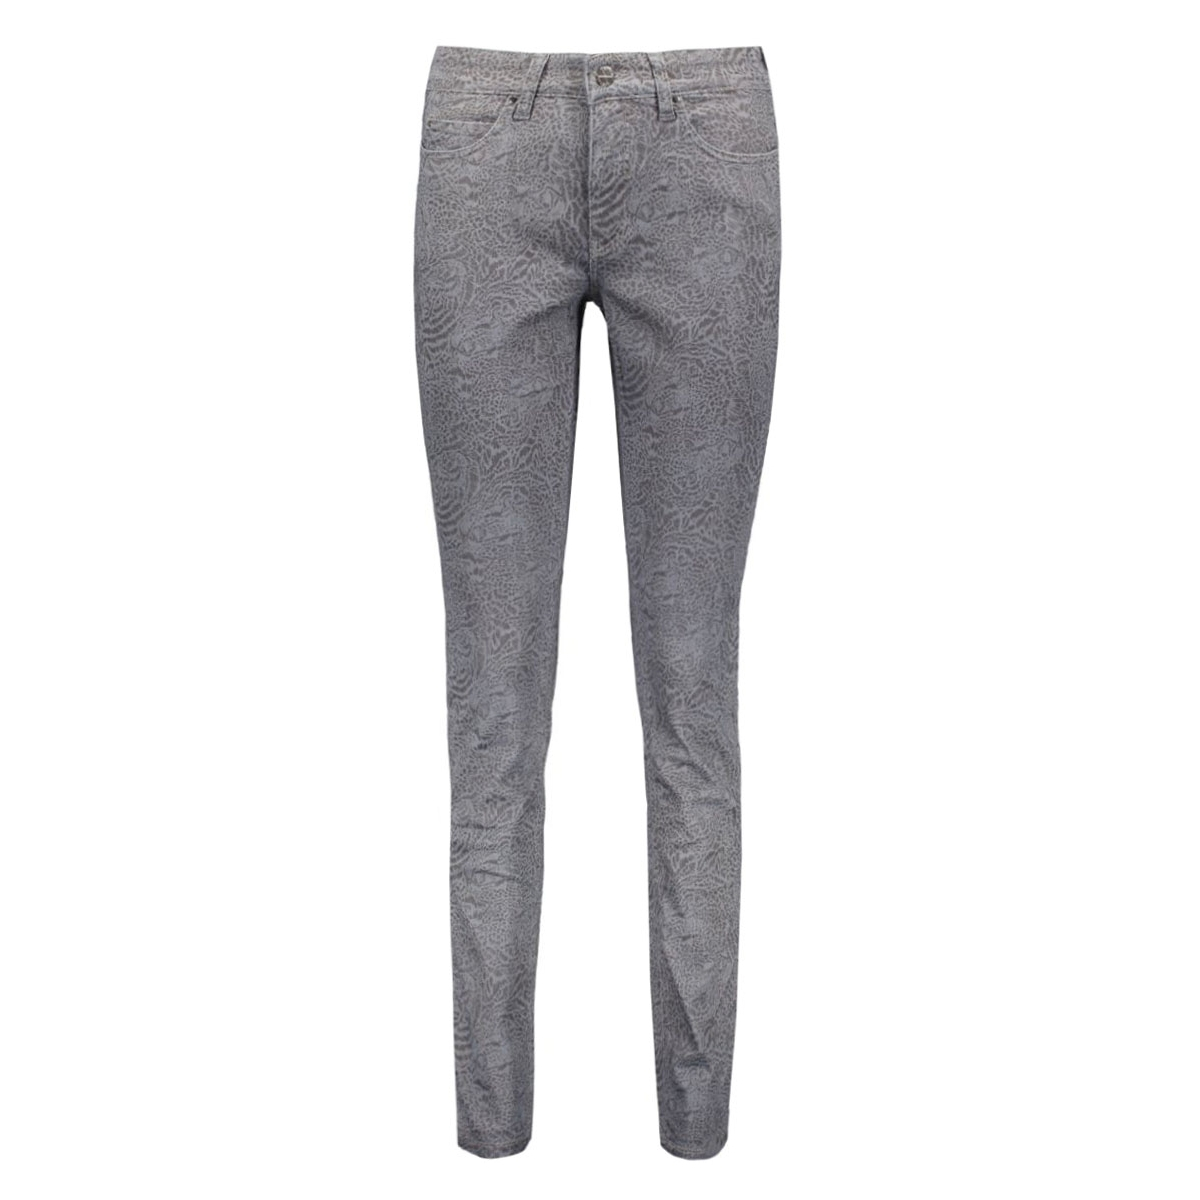 dream skinny 5402 80 0355 16 mac jeans grey